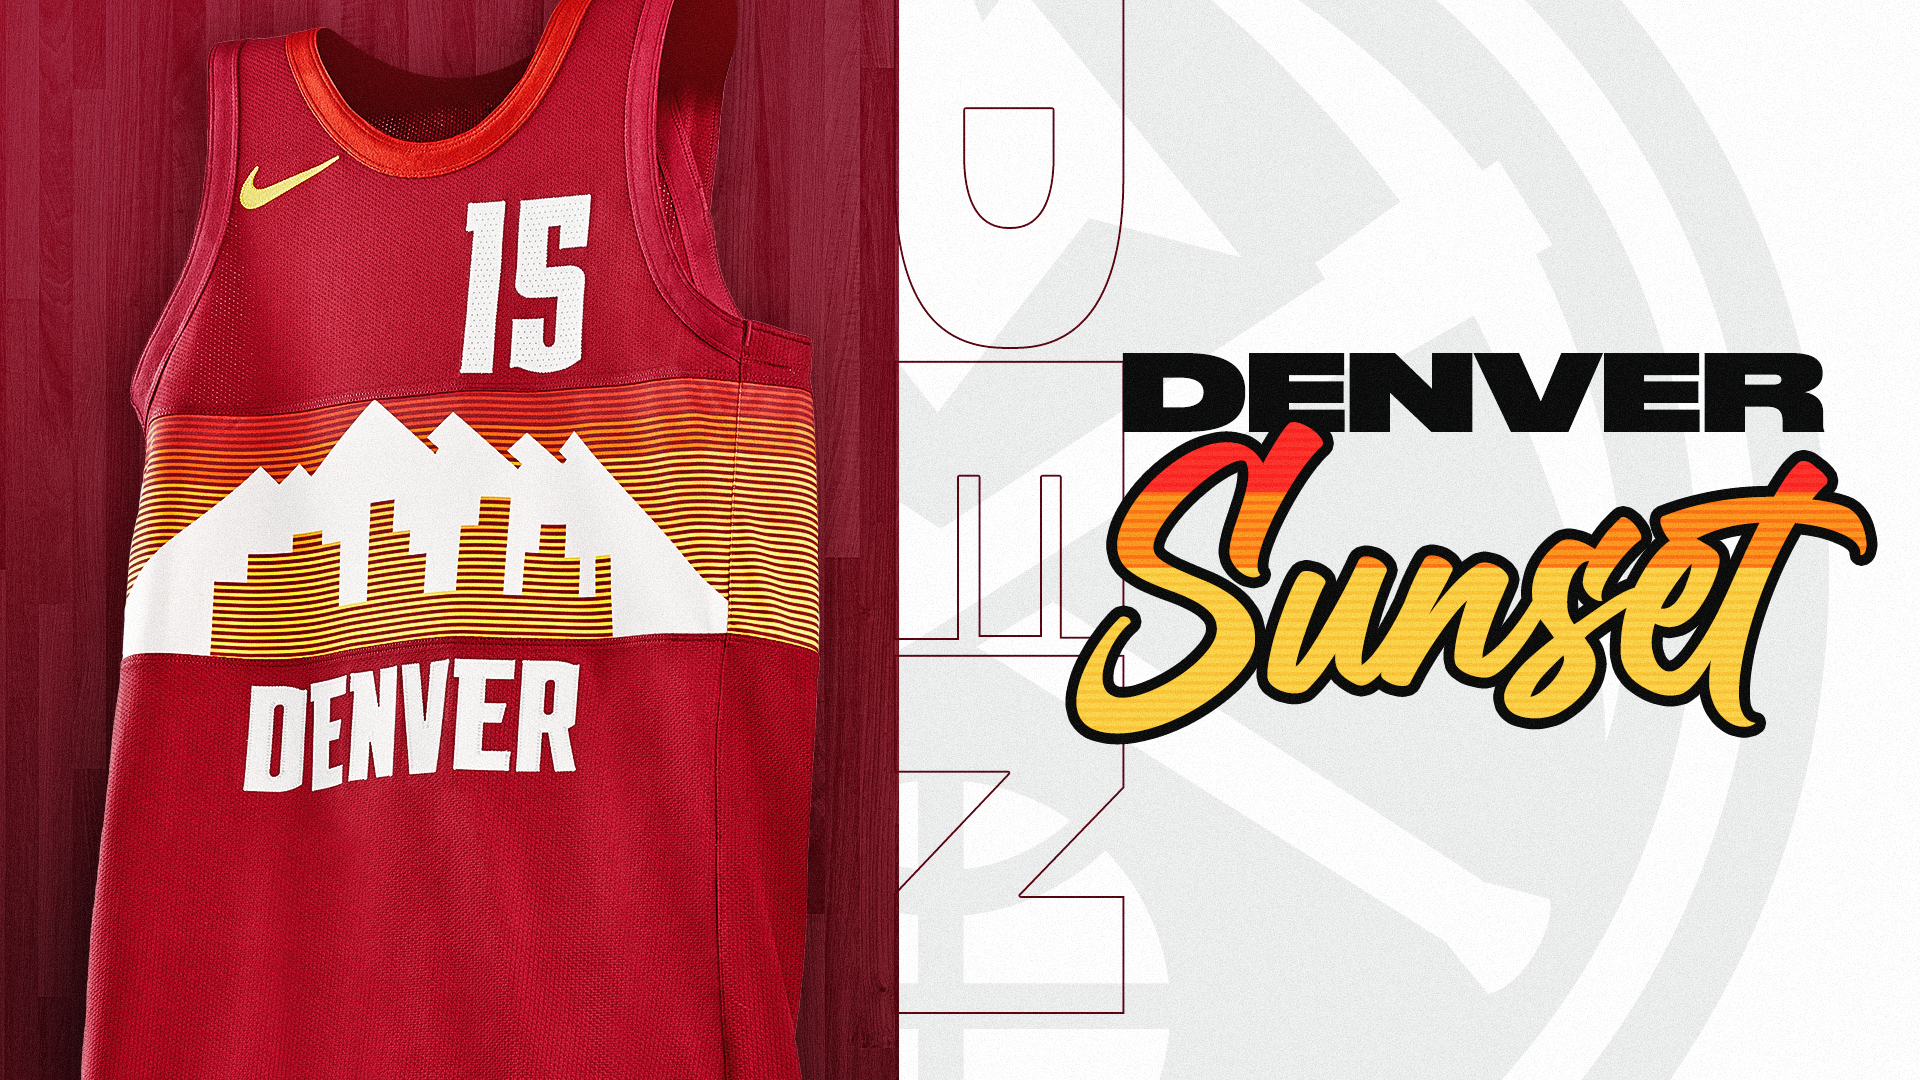 Denver Nuggets: Denver Sunset